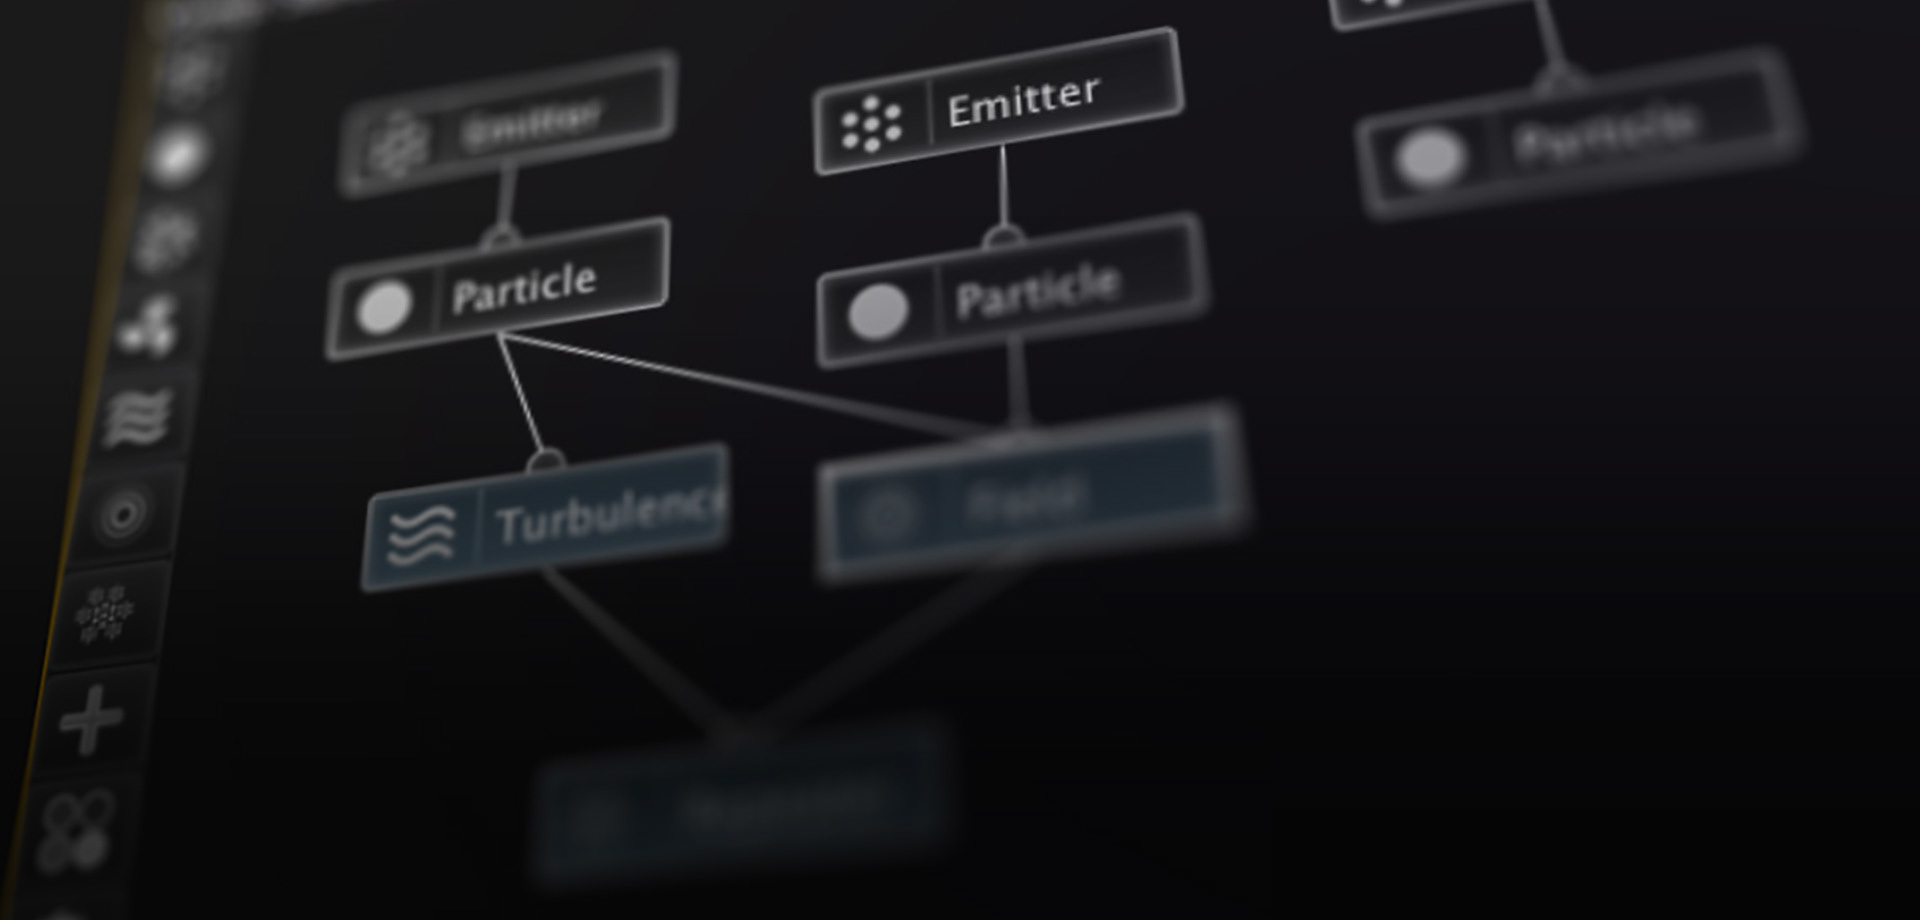 Stardust: The New Standard In After Effects Particle Plug